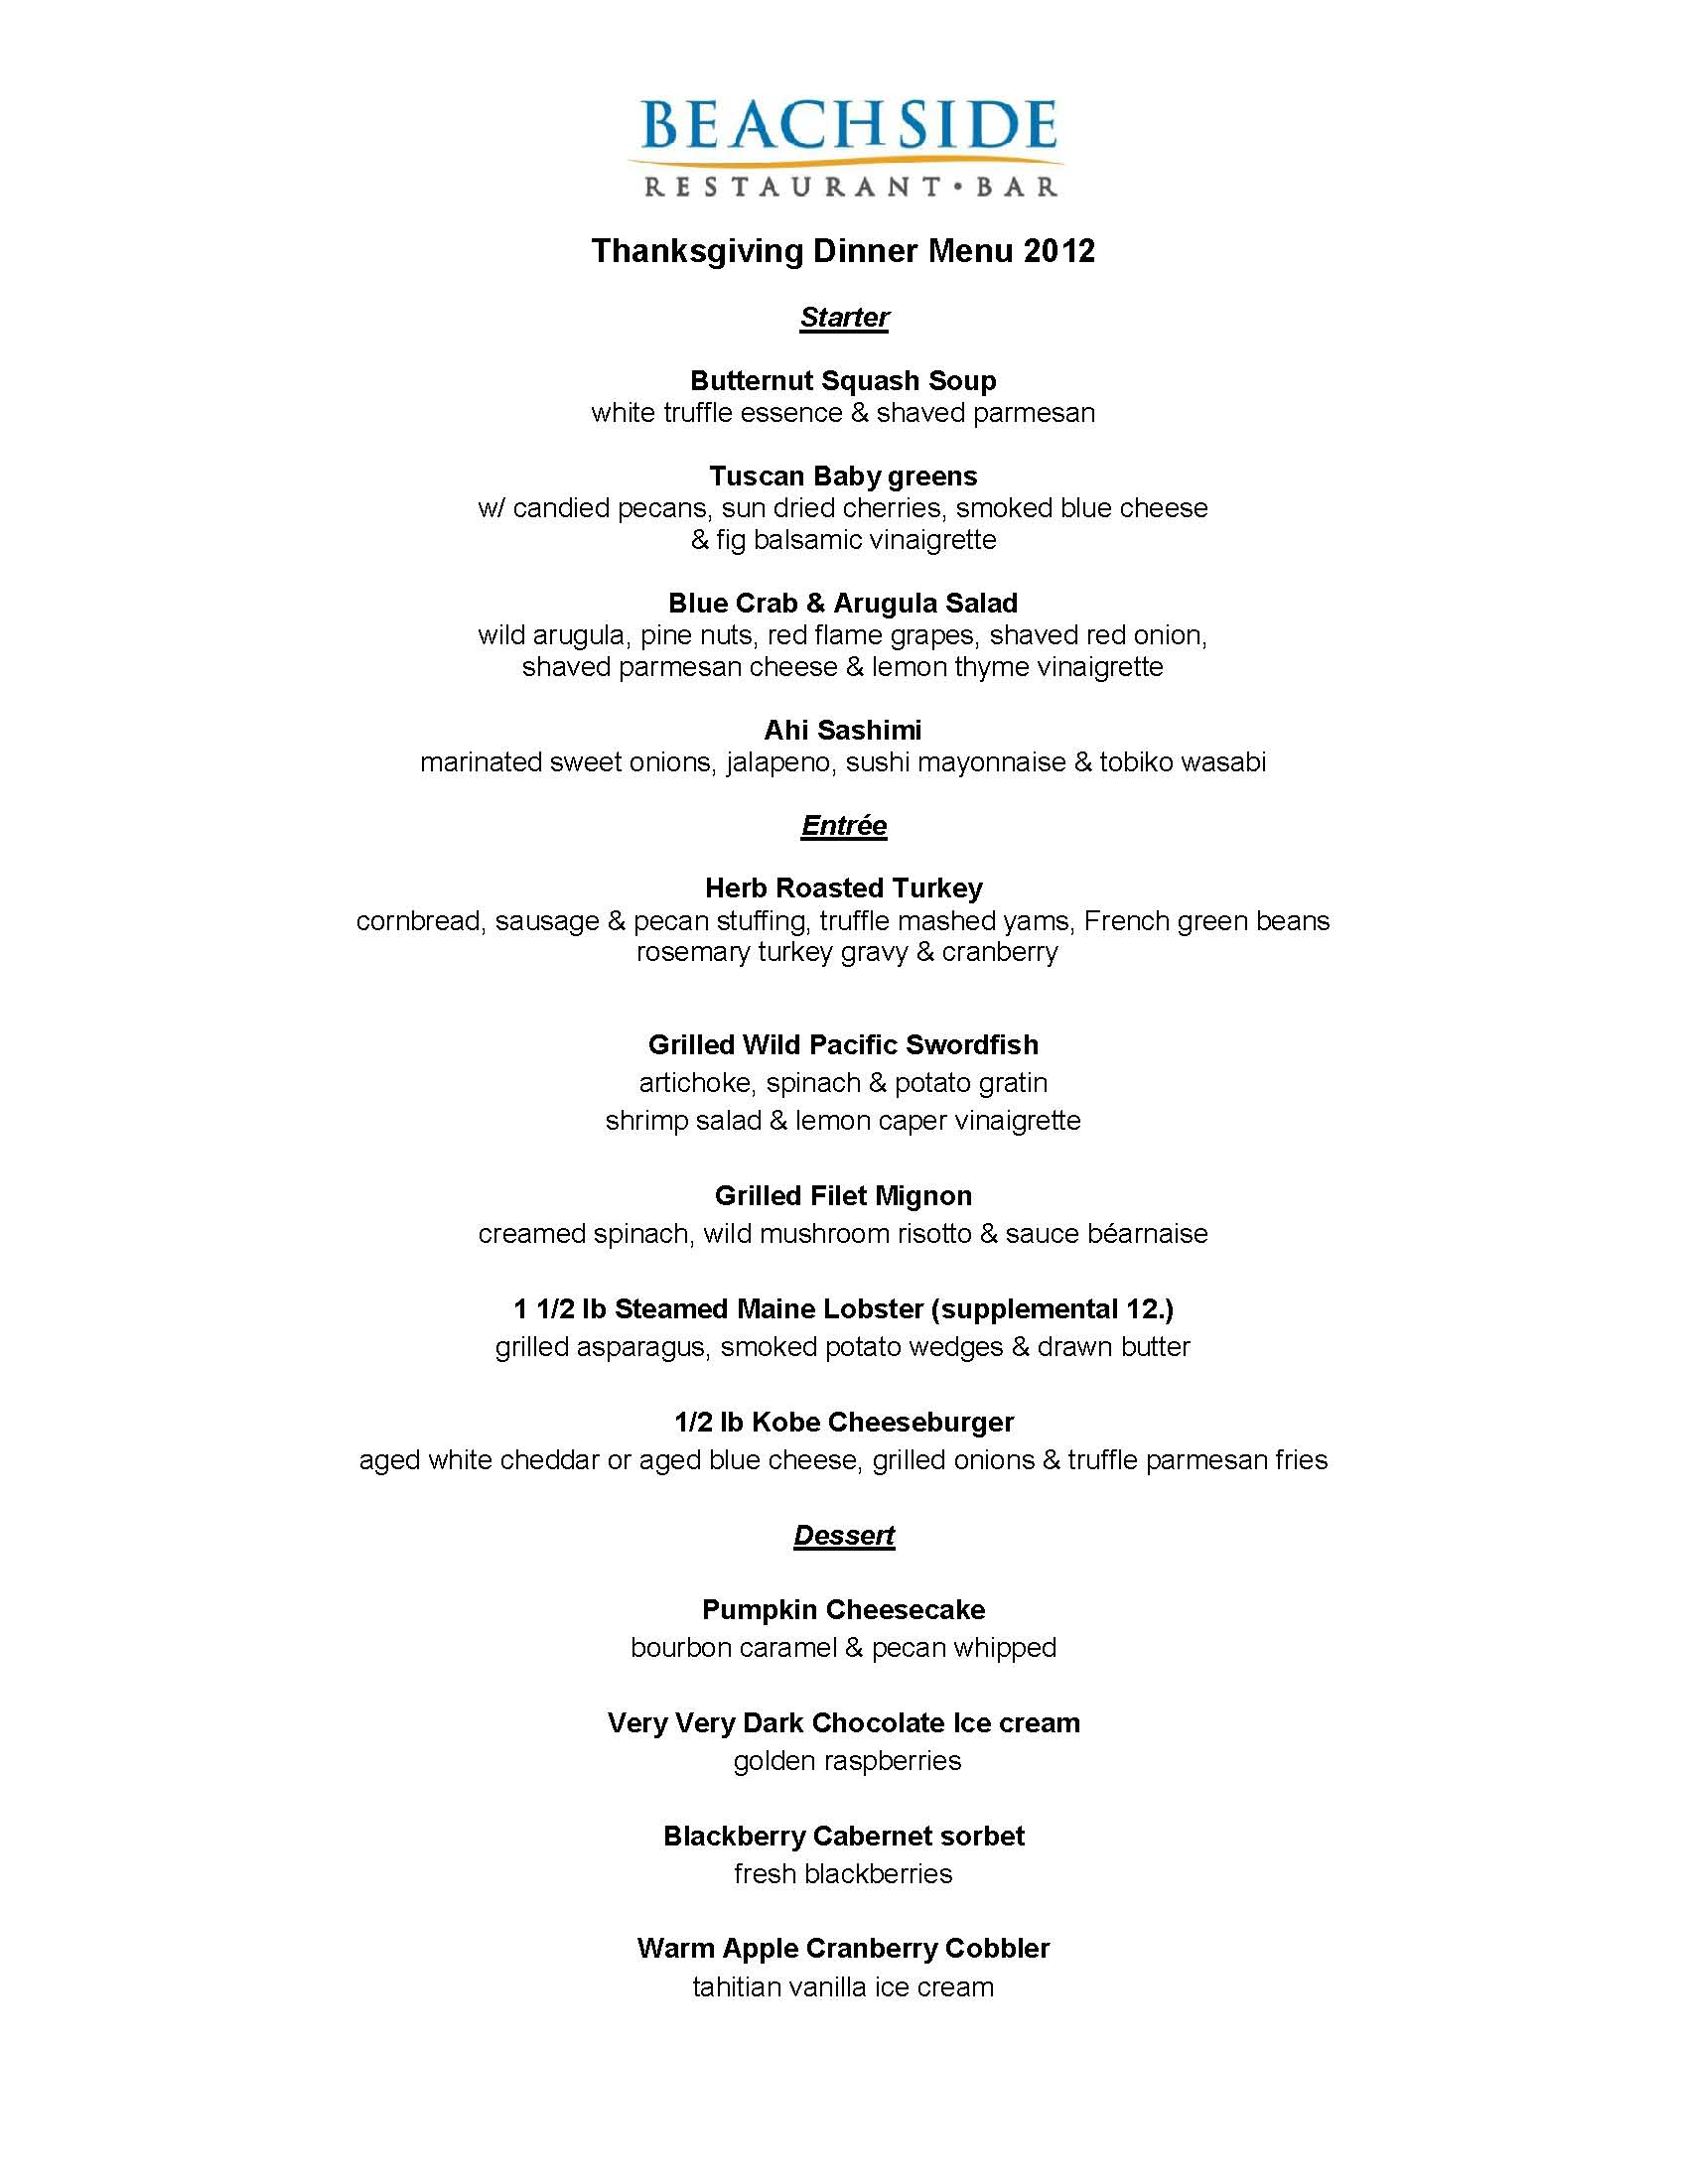 Pacifica hotels blog page 7 of 17 your guide to the for Traditional southern thanksgiving dinner menu